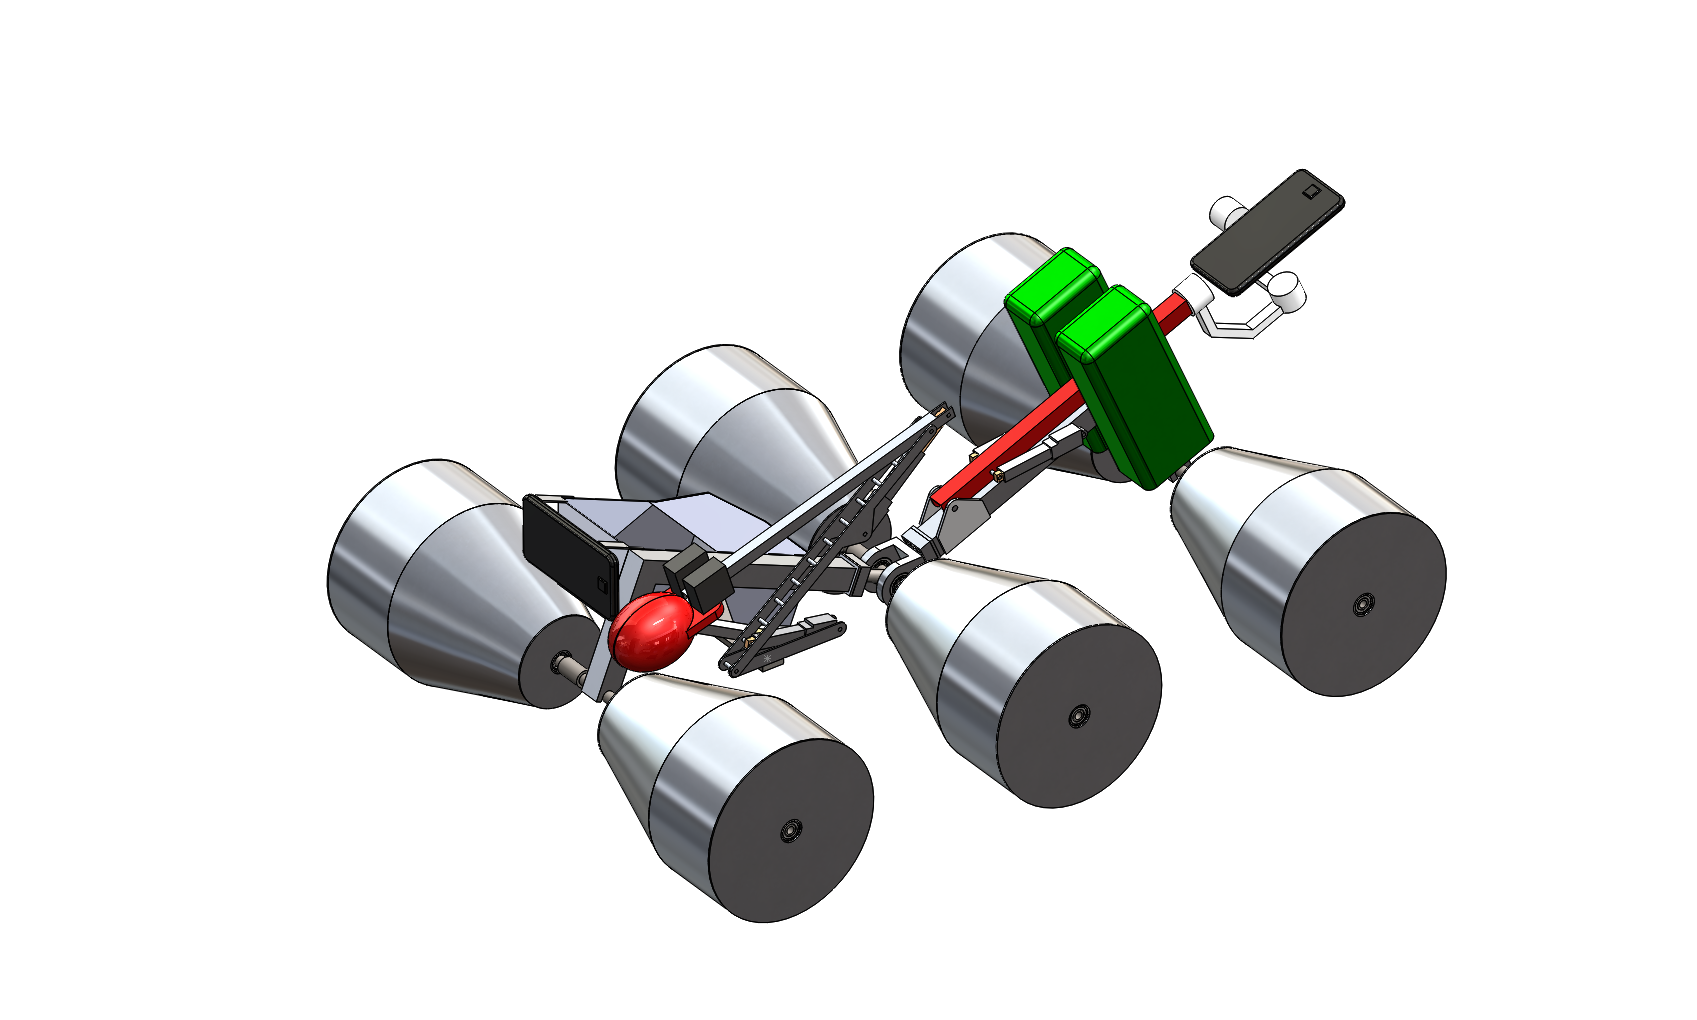 Sooner Rover Team - Standard Isometric View